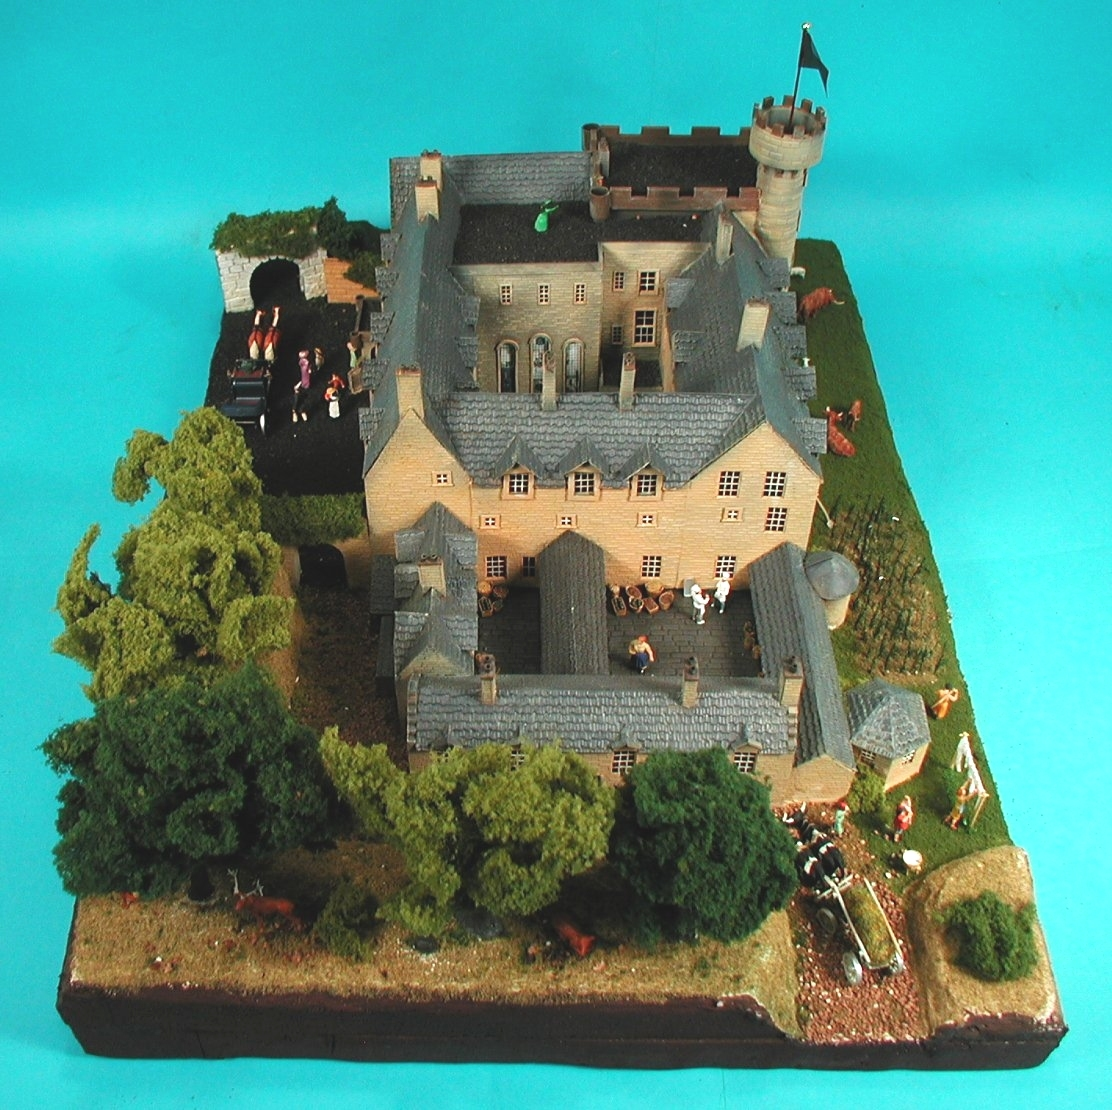 How to Make a Model Castle How to Make a Model Castle new pictures